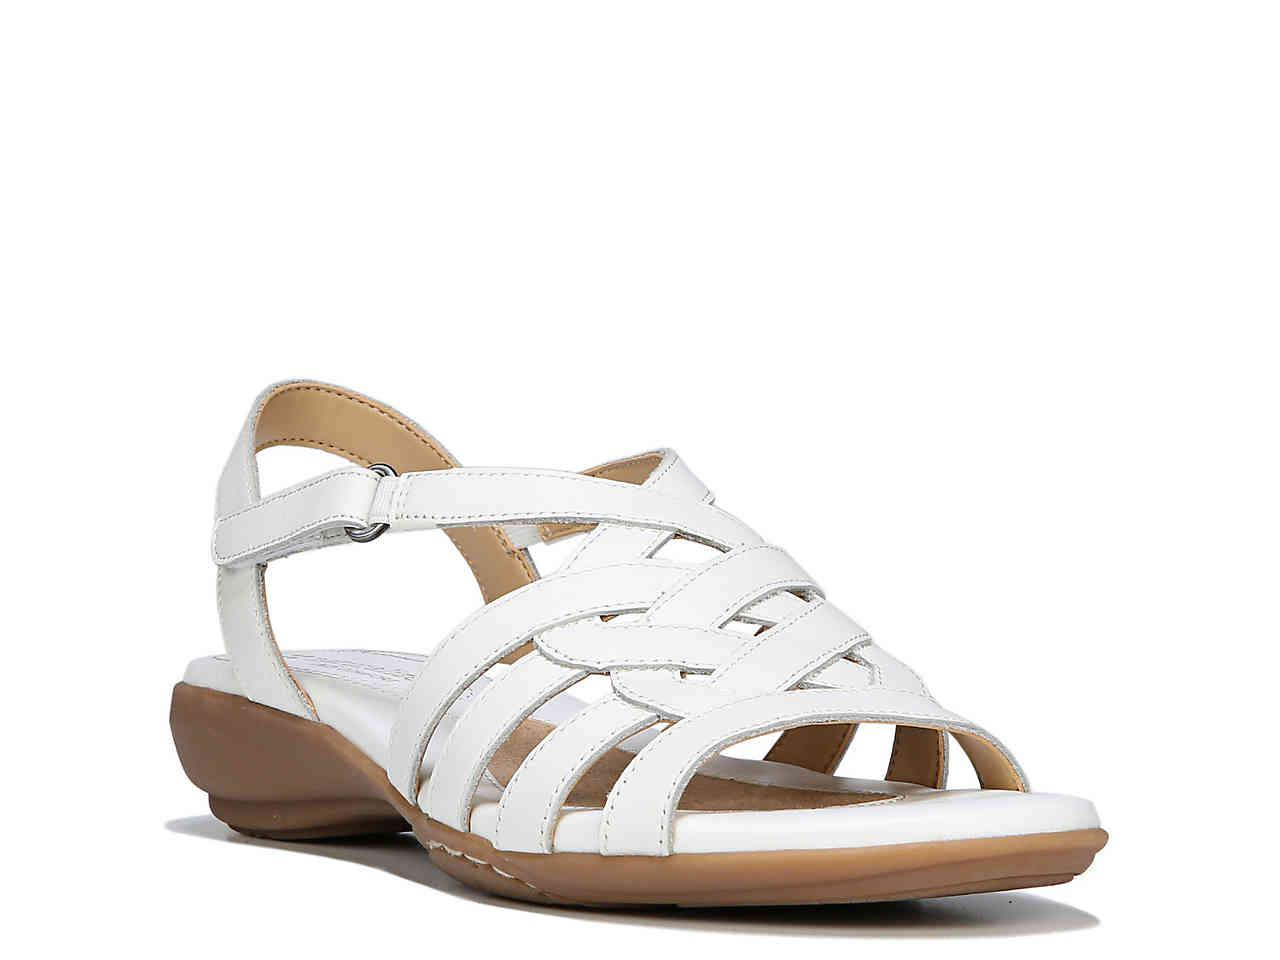 aaed1bd7c344 Lyst - Naturalizer Charm Wedge Sandal in White